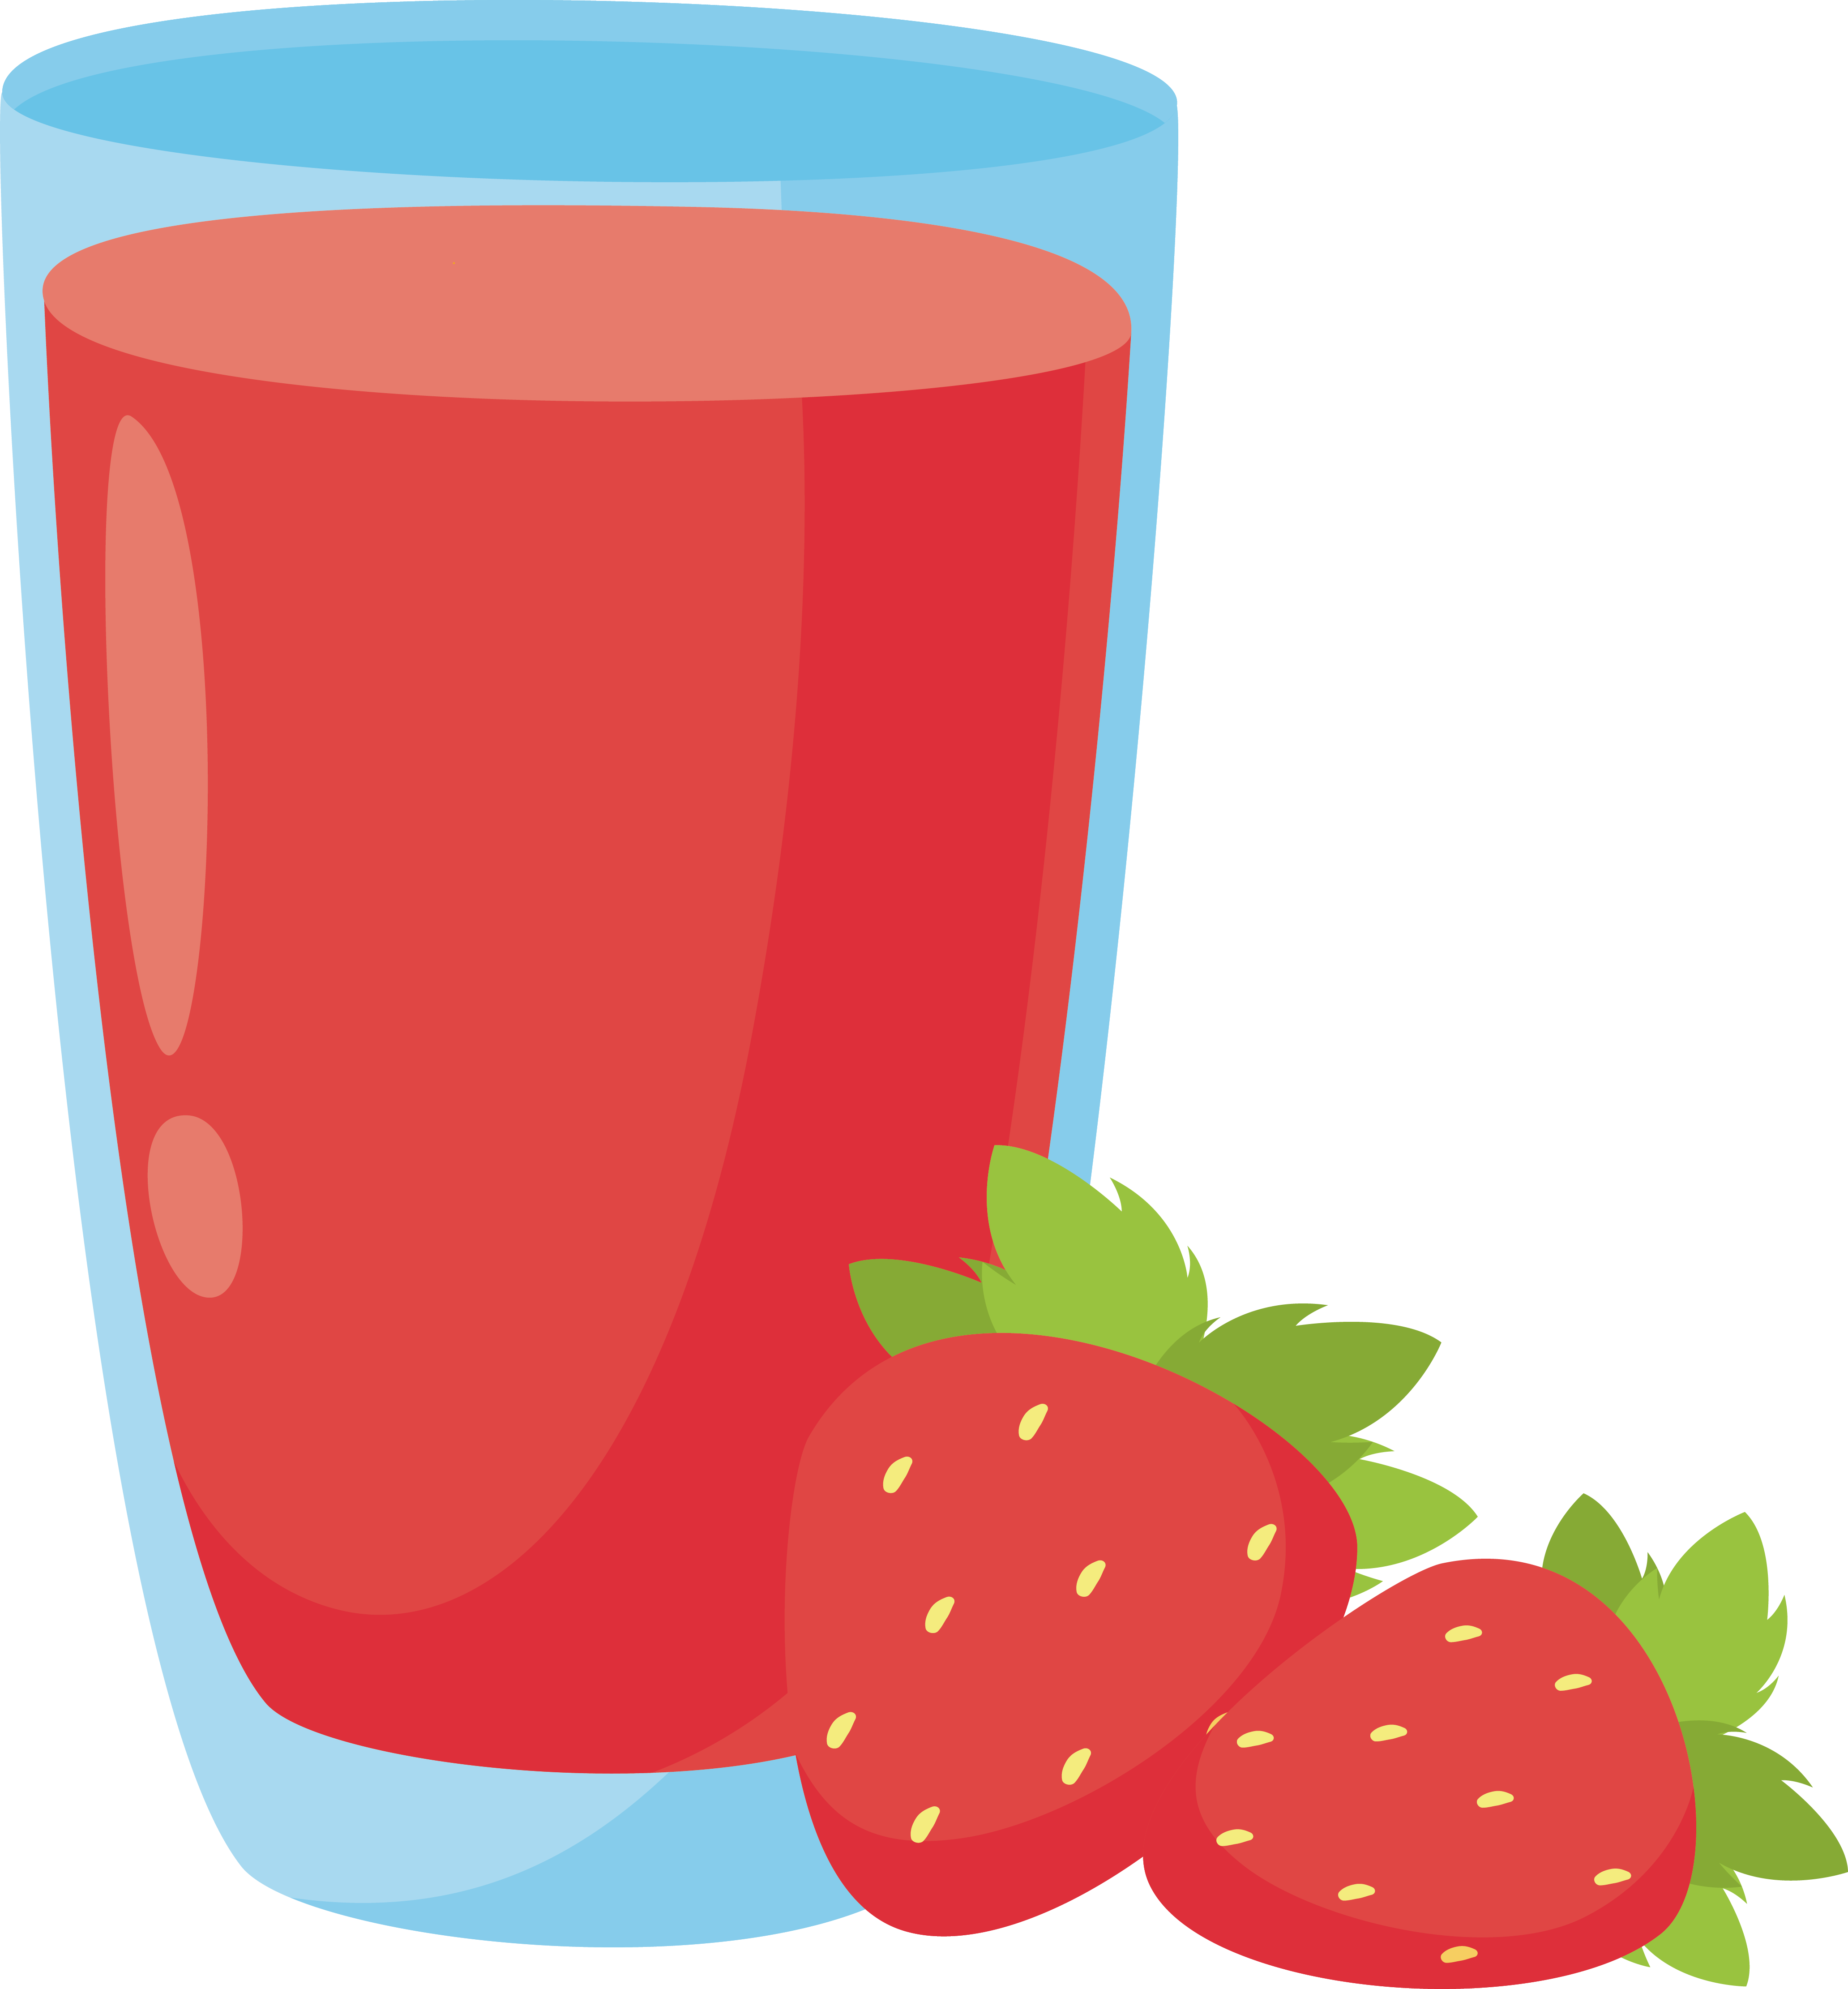 Smoothie vector clipart. Banana strawberry colored artwork